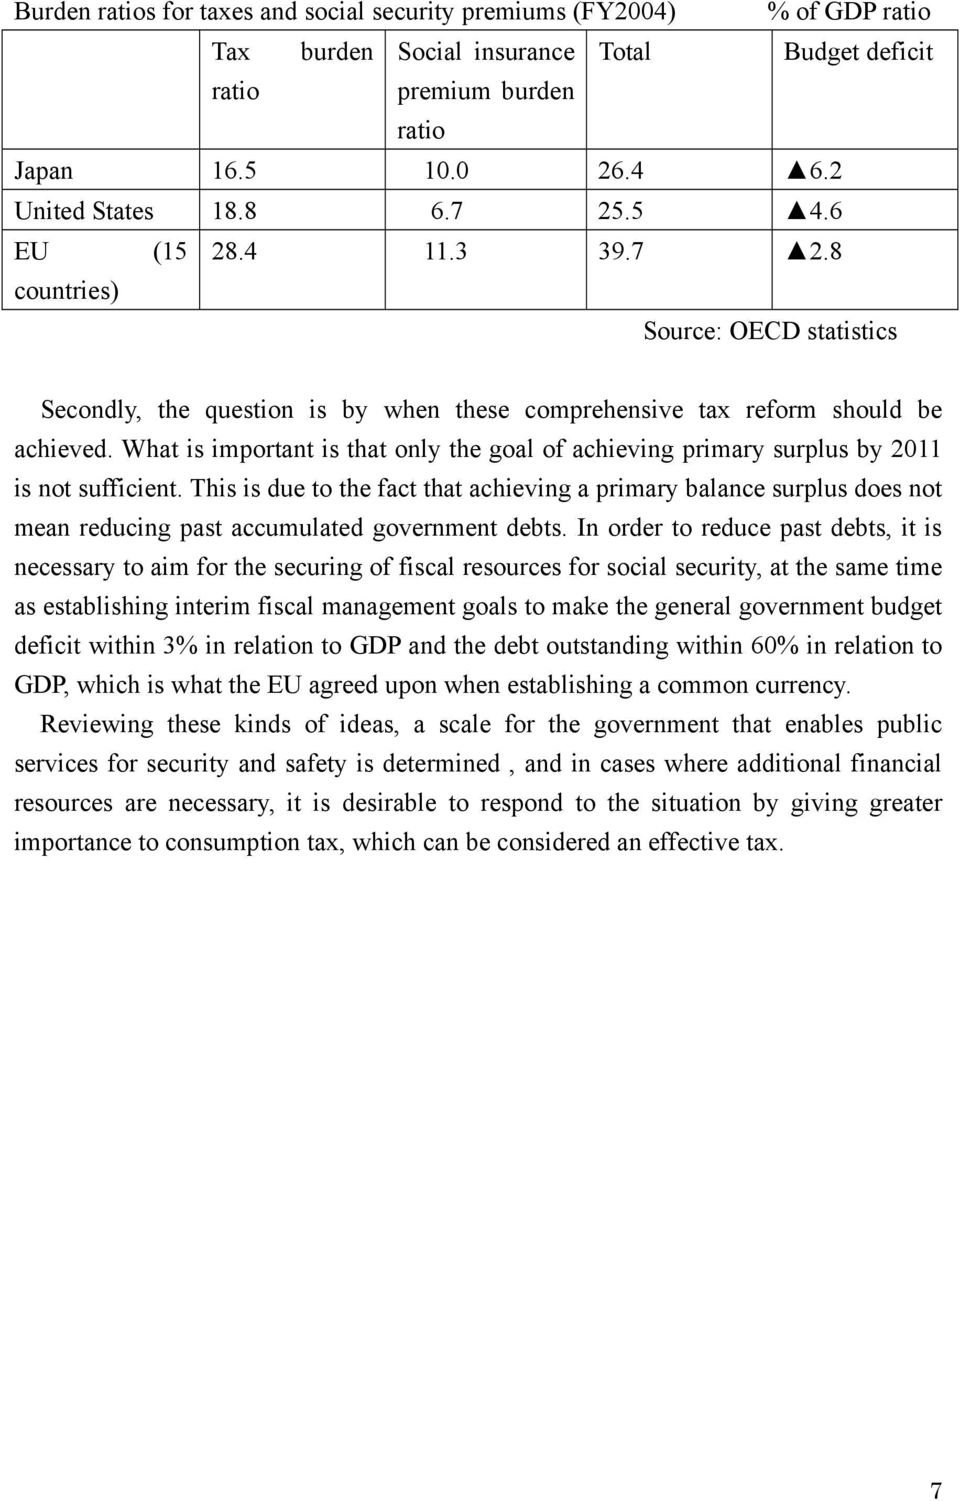 What is important is that only the goal of achieving primary surplus by 2011 is not sufficient.